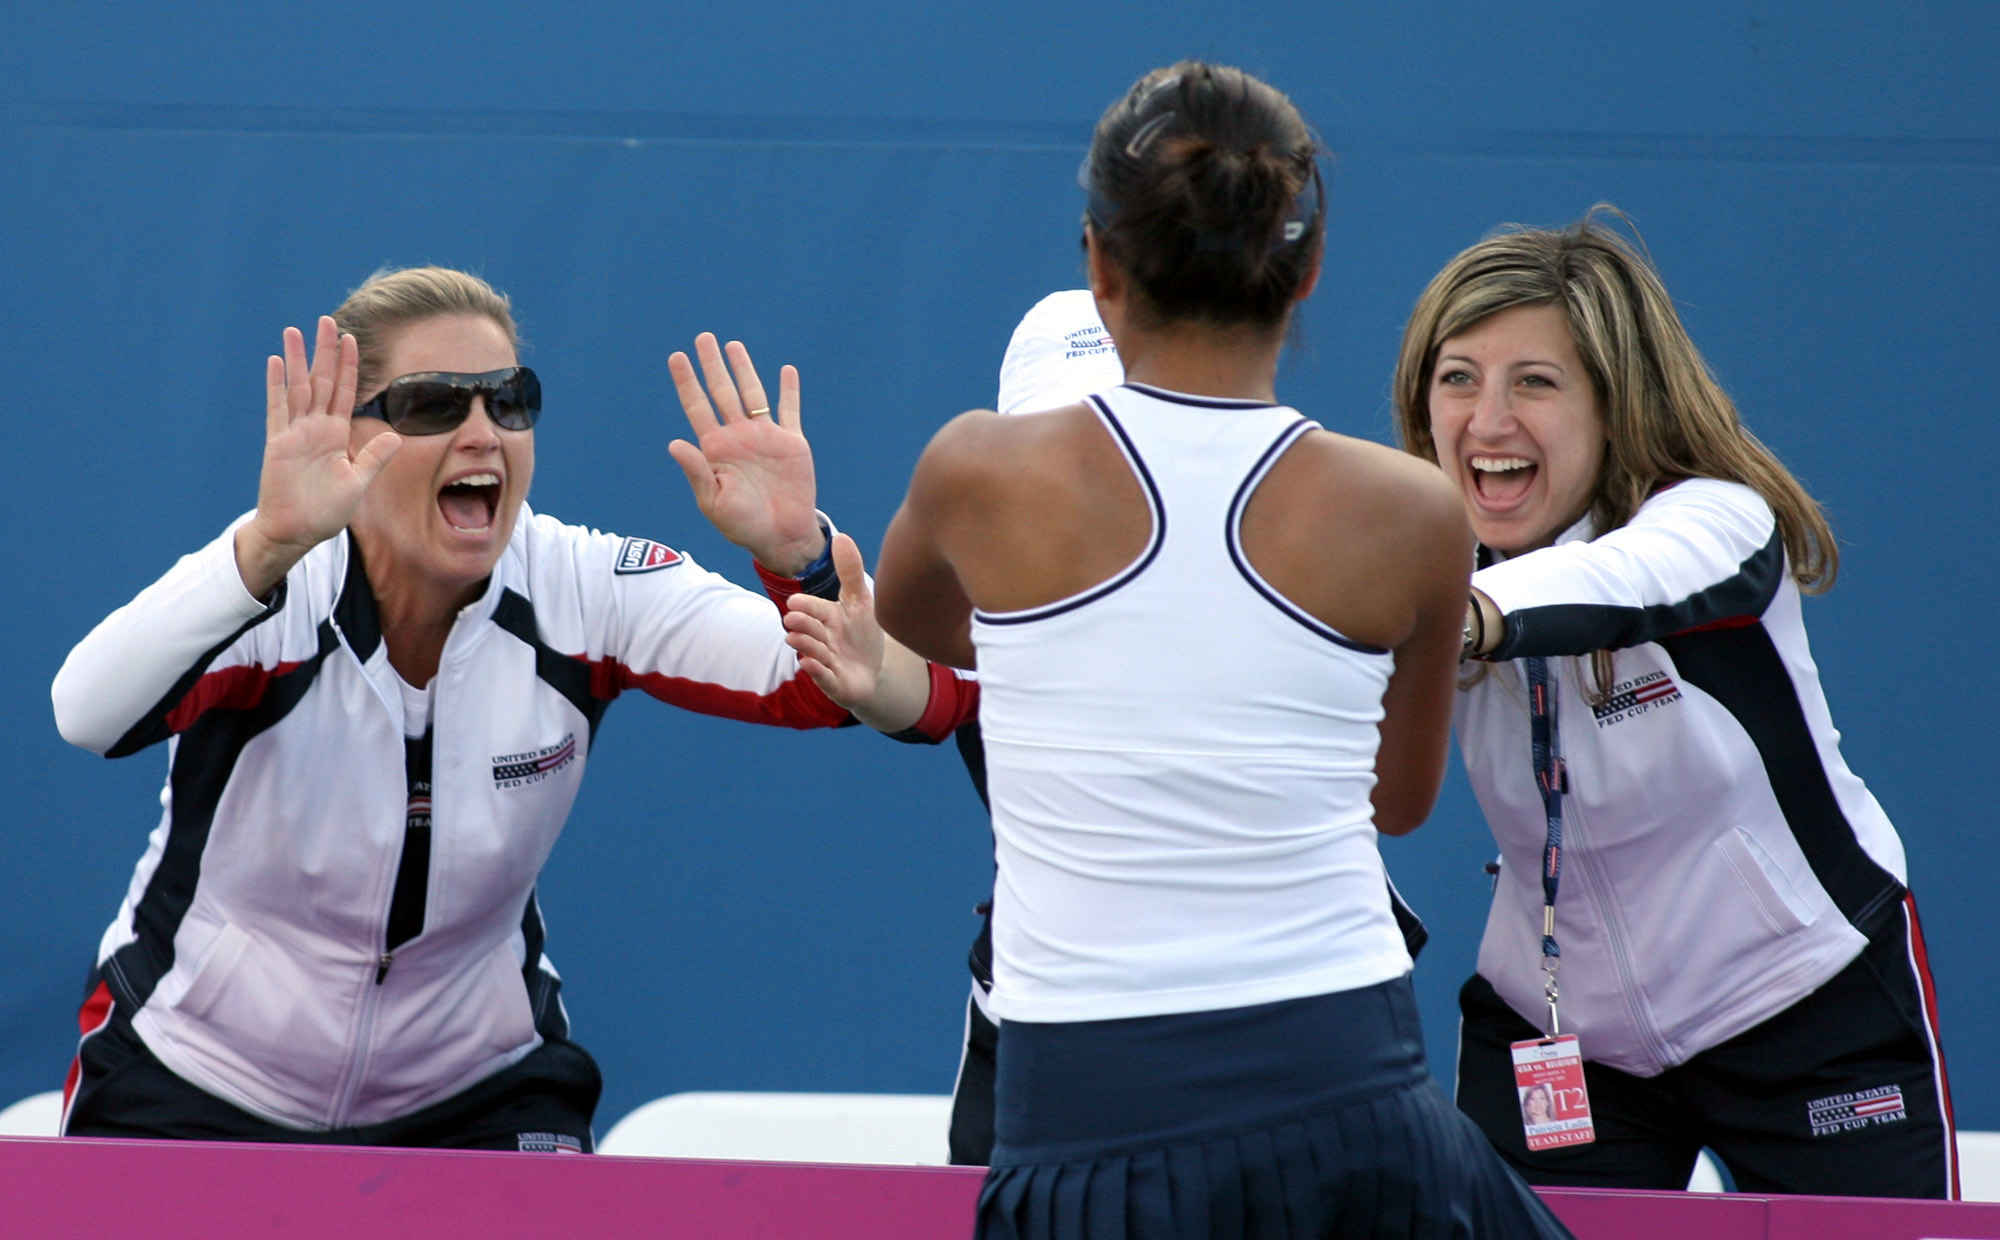 Vania King, center, of the United States, celebrates with team coach Kathy Rinaldi, left, an unidentified woman, center, and physical therapist Patricia Ladis, right, after defeating  Kirsten Flipkens, of Belgium, 4-6, 6-4, 7-5, at the 2007 Fed Cup quarte